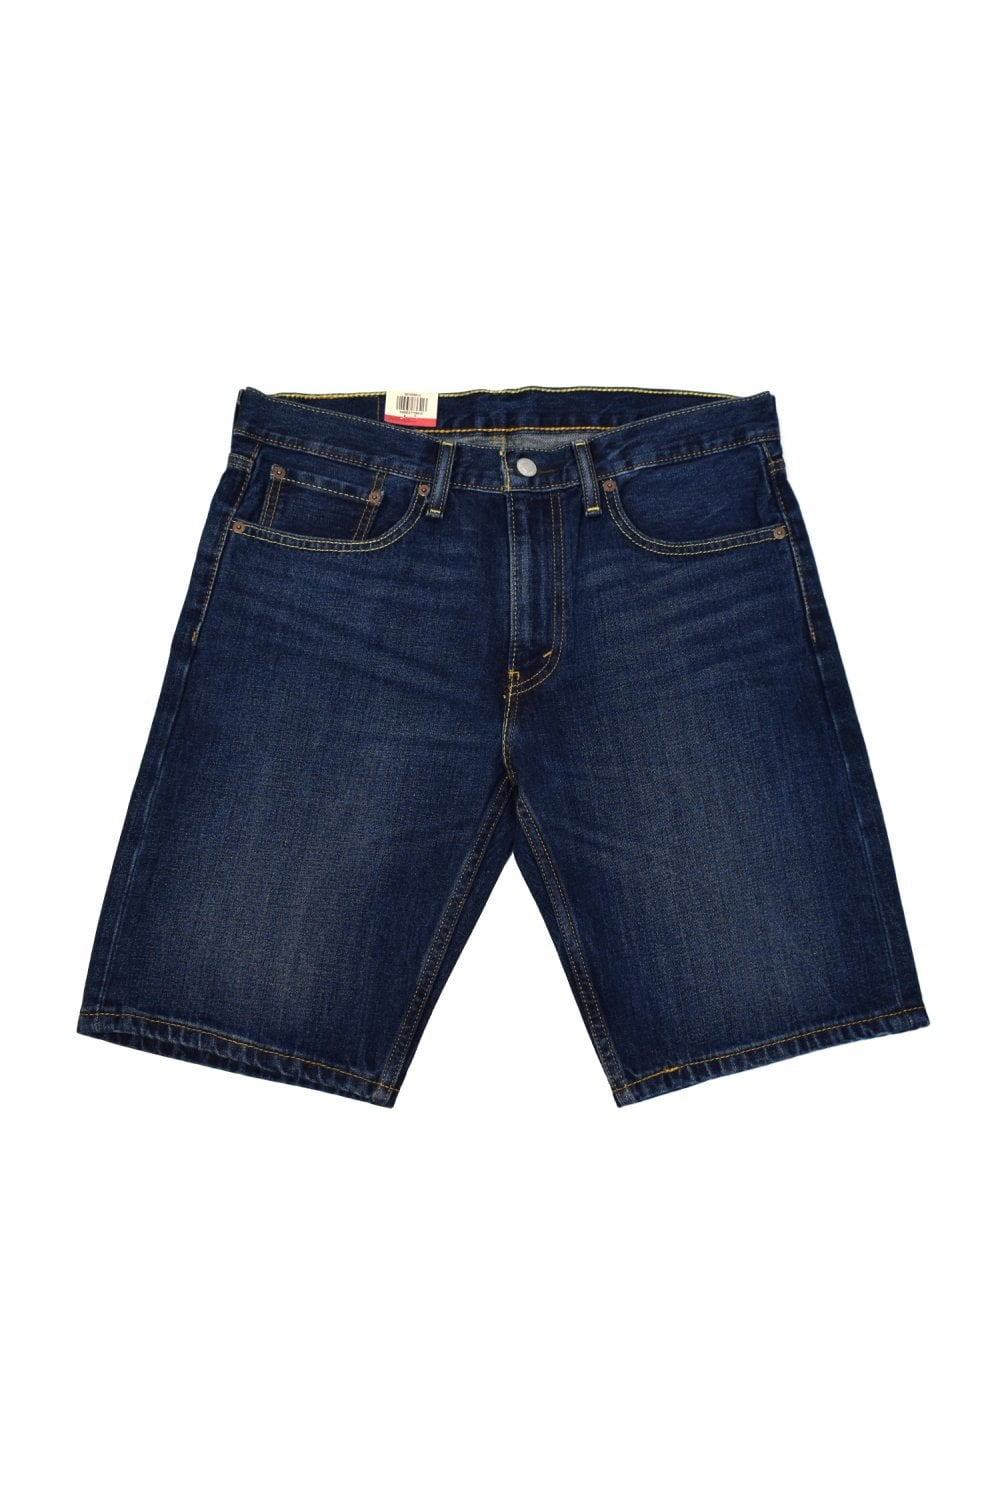 Hemmed on Thirtysix Levi's The Shorts 502 Roof Tapered TqT0EIn6